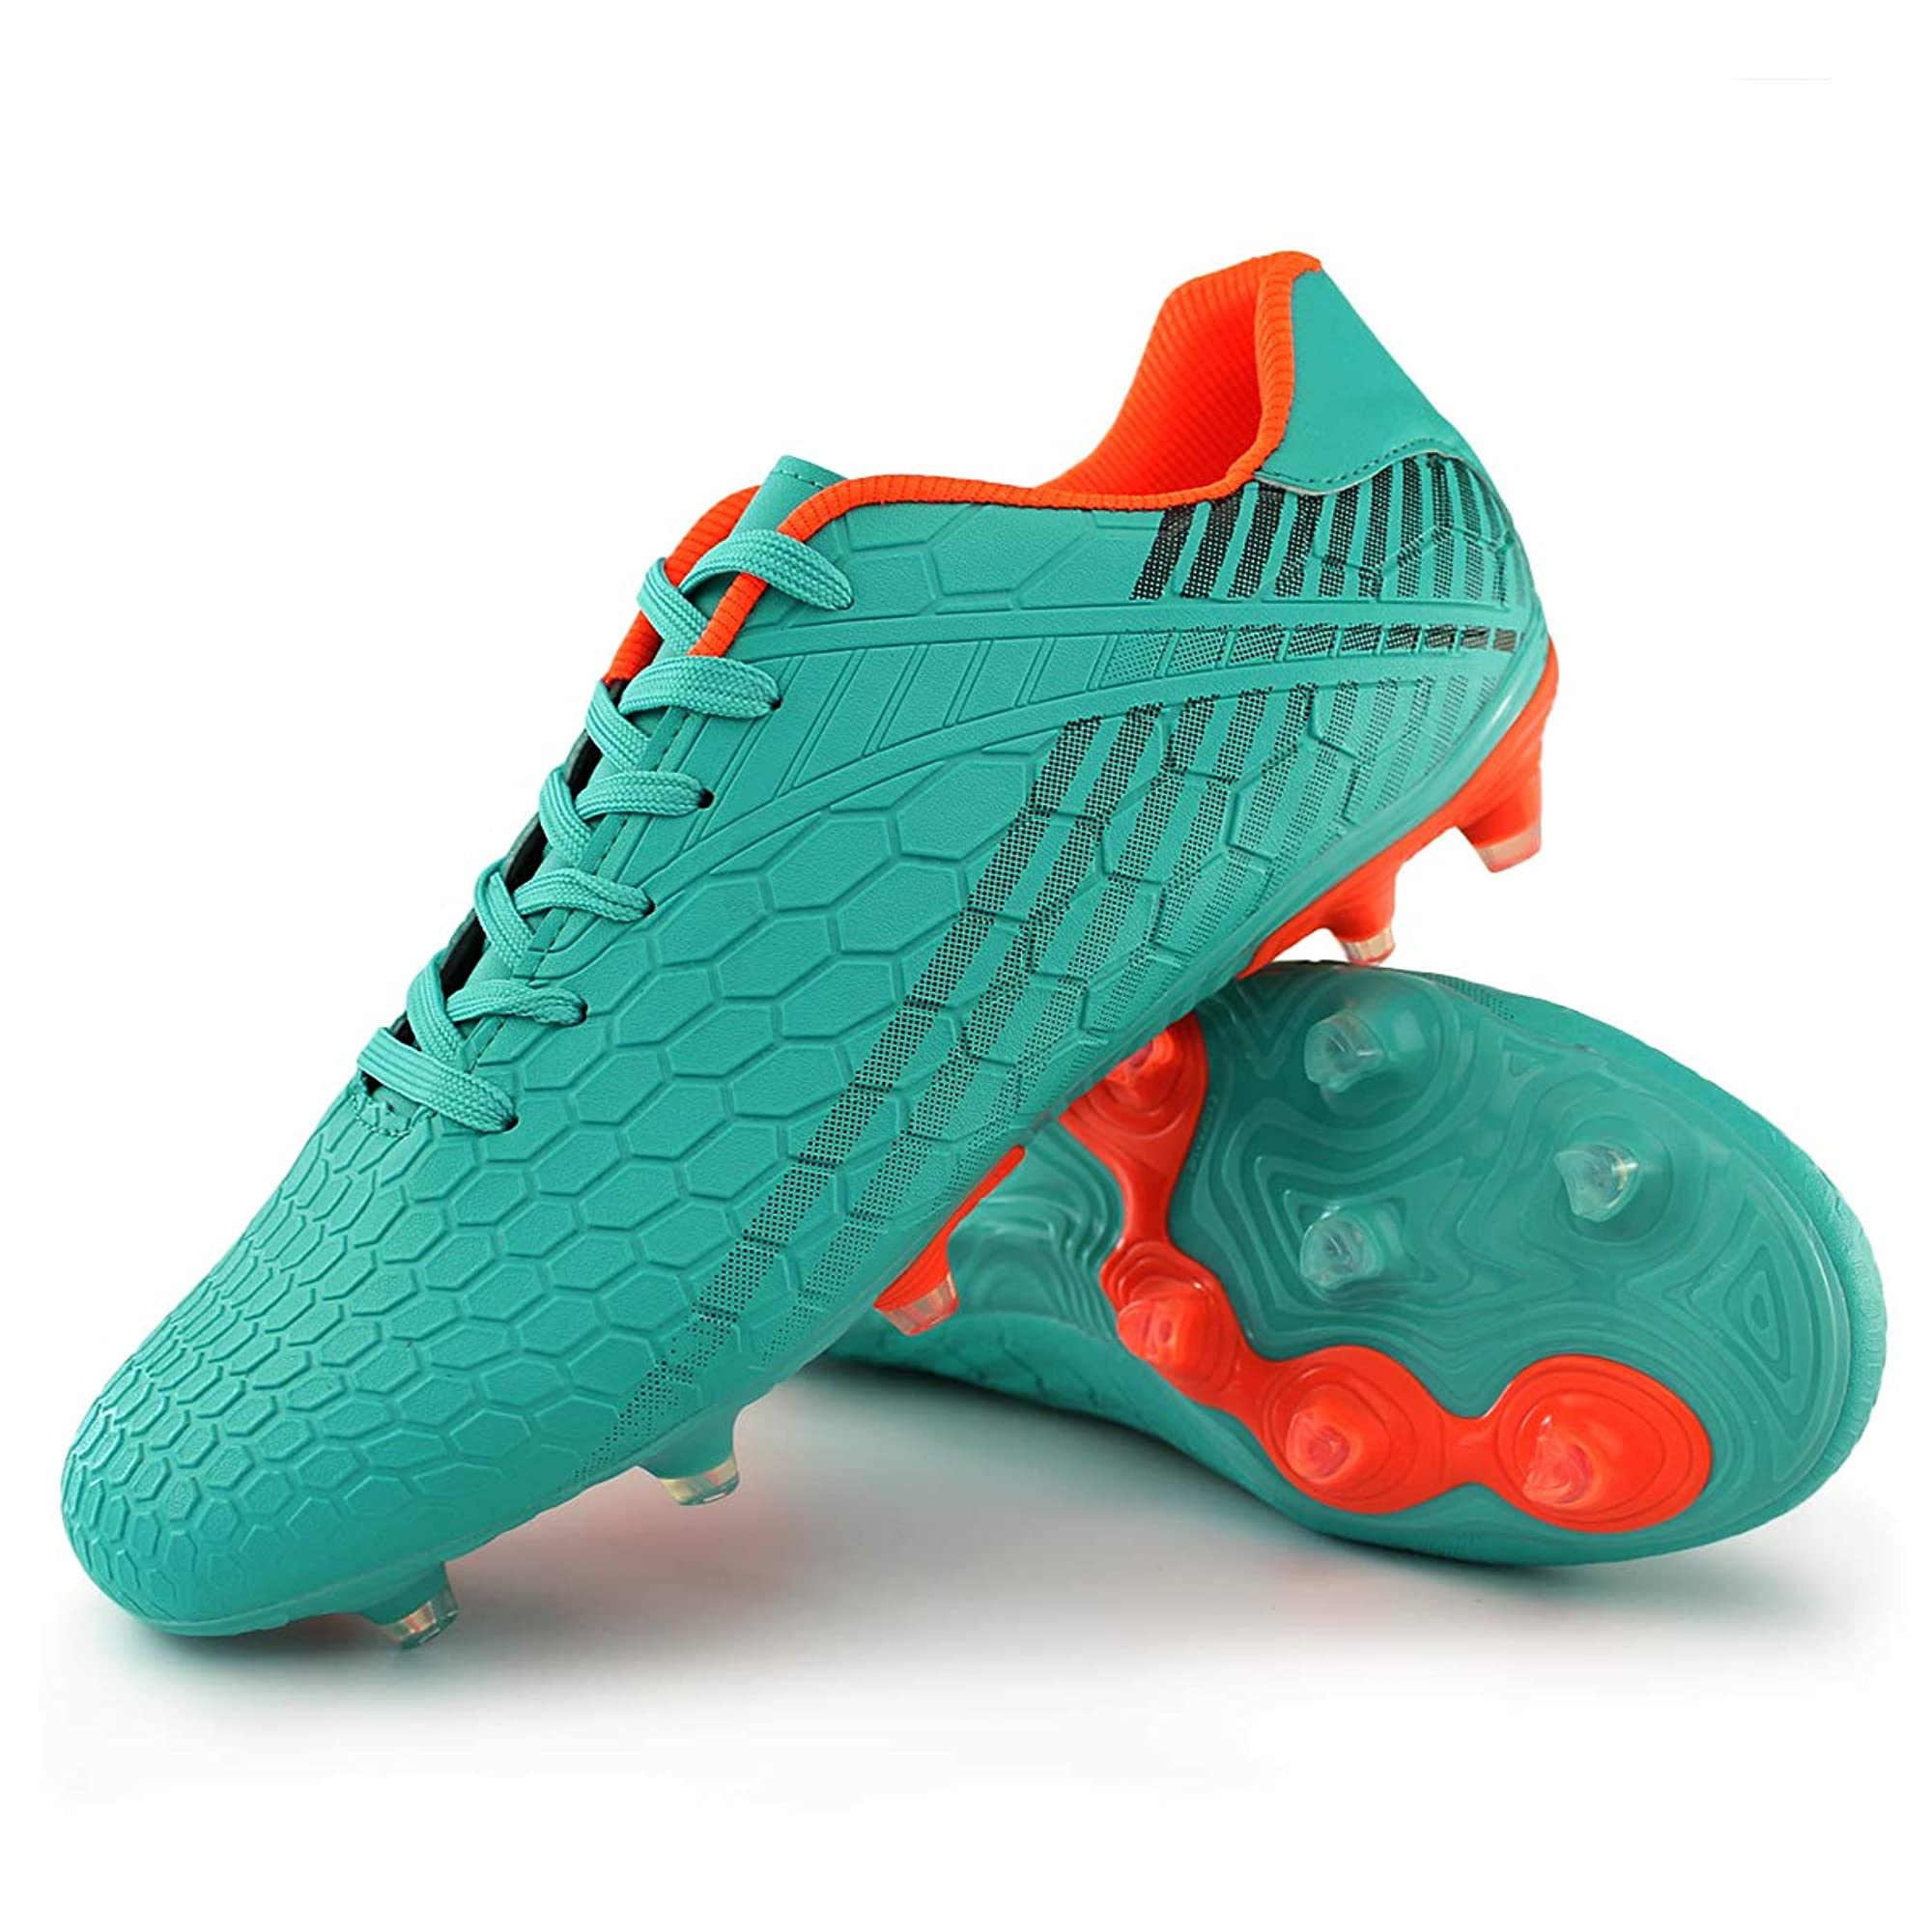 Men'S Soccer Shoes (Rubber Sole)